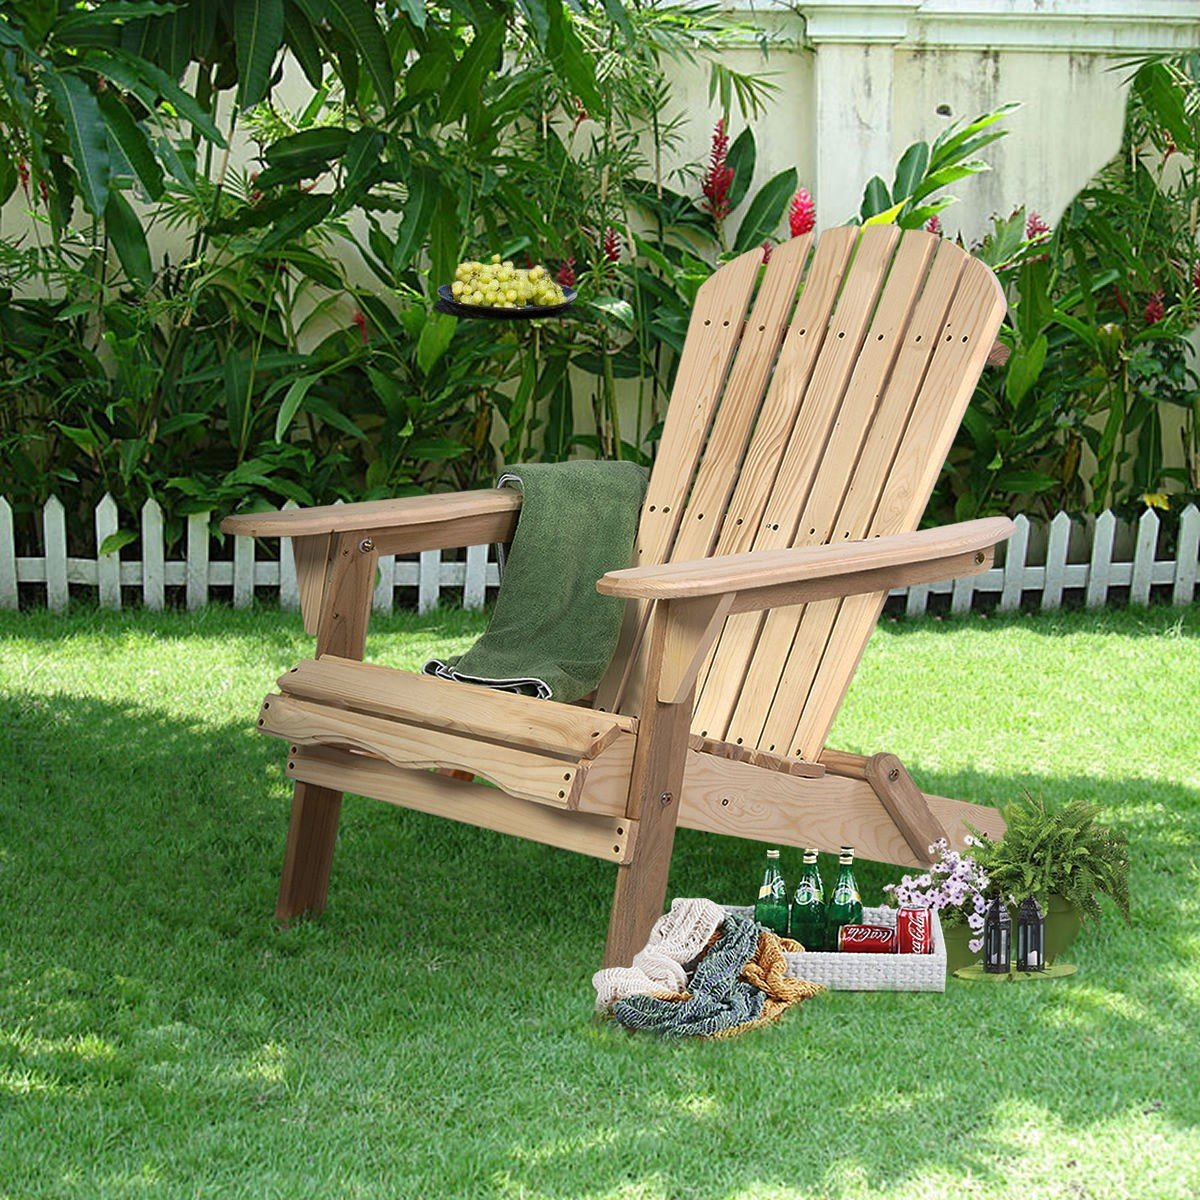 MD Group Adirondack Chair Wooden Outdoor Foldable Fir Wood Lightweight Patio Furniture